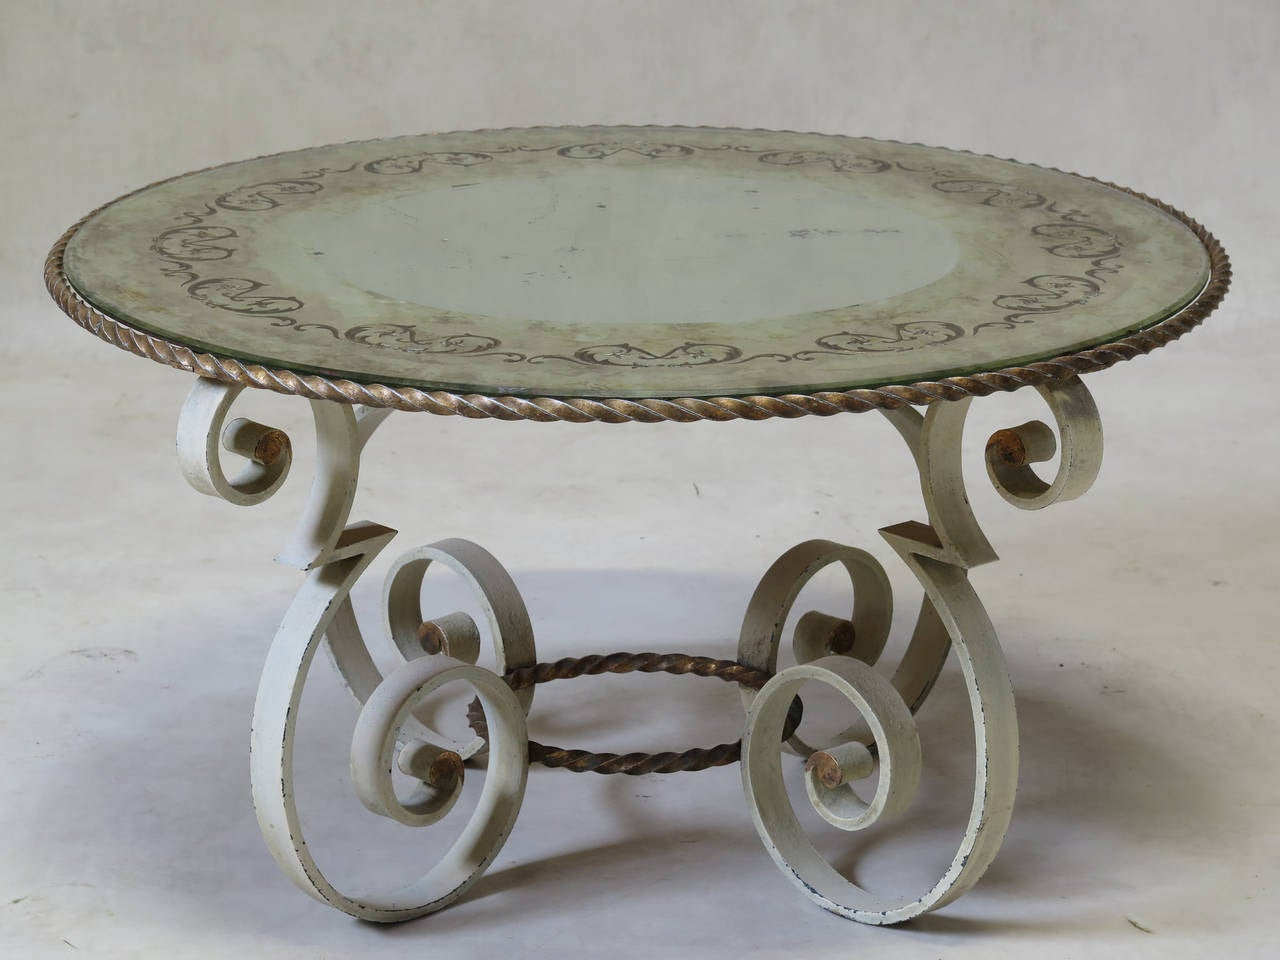 Wrought Iron Coffee Table With Eglomis Mirror Top France 1940s For Sale At 1stdibs